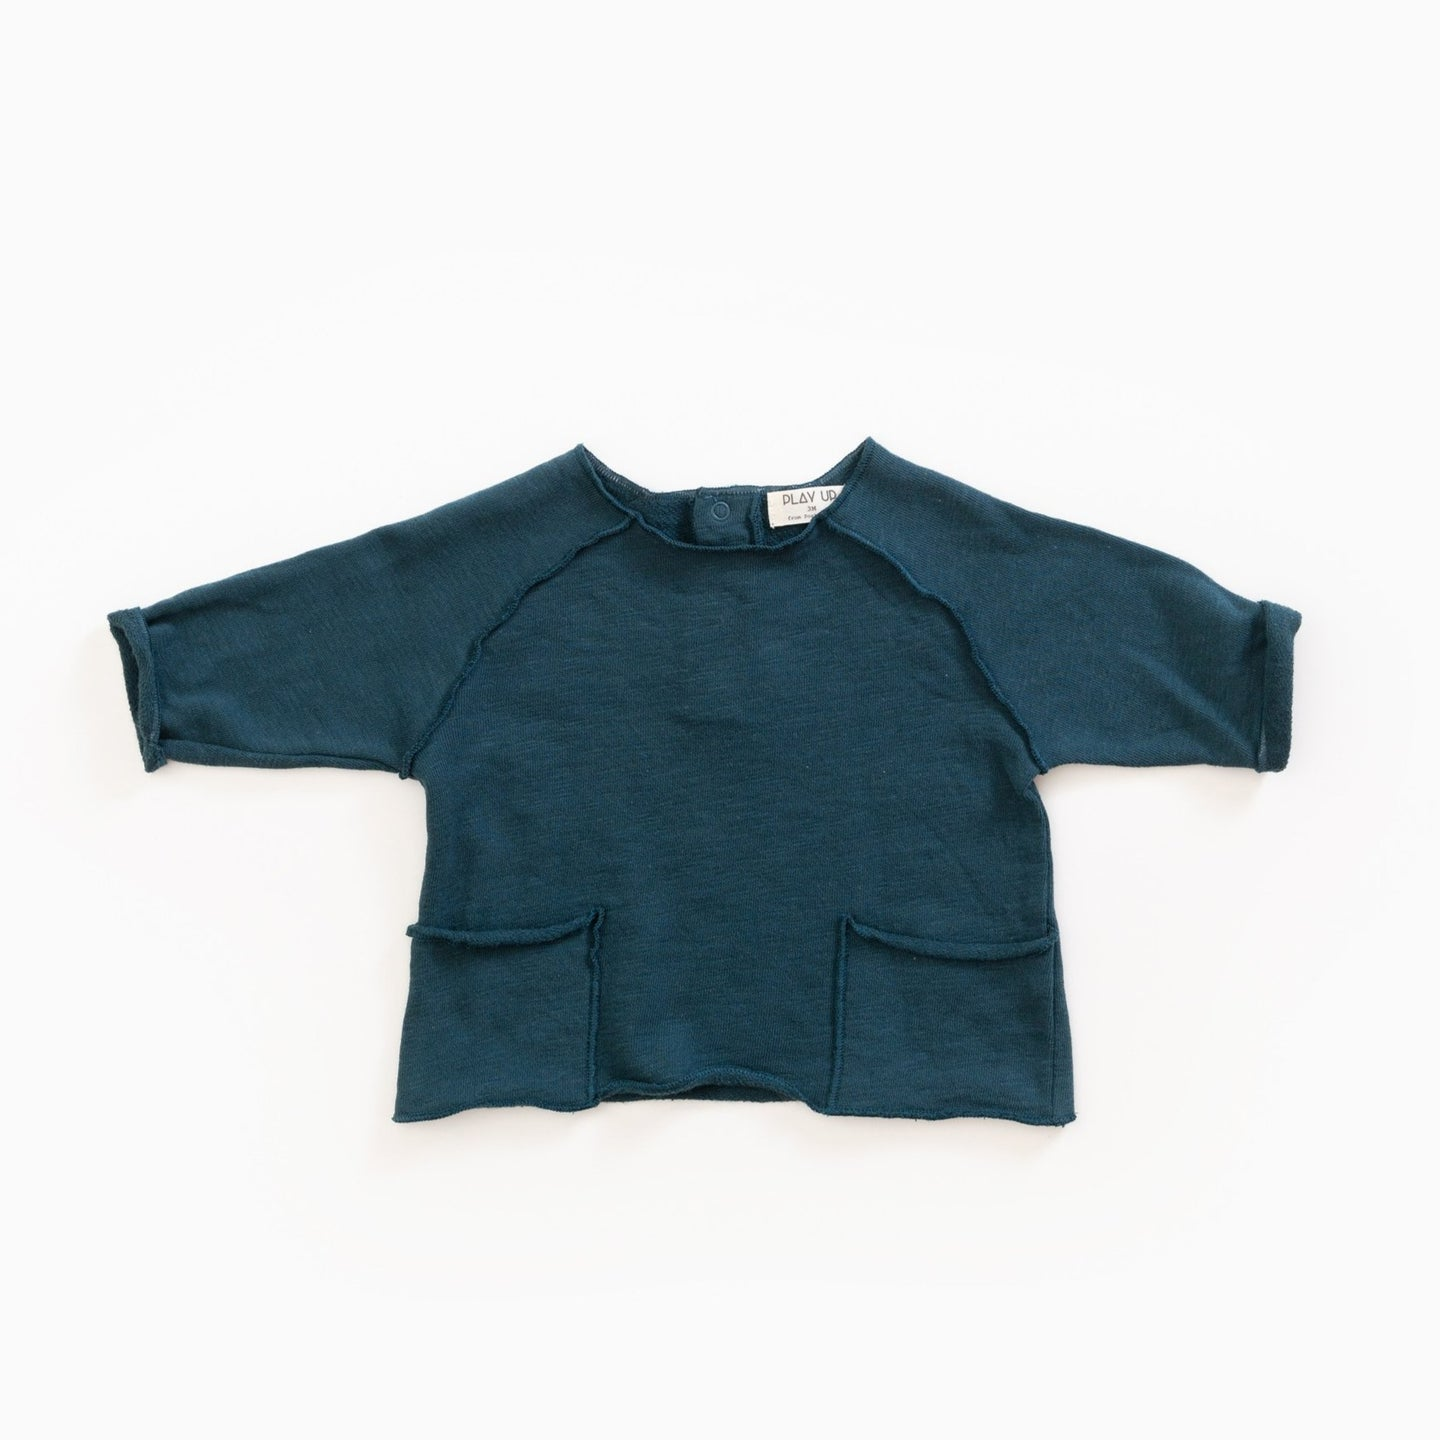 PLAY UP Sweater mit Taschen Organic Cotton